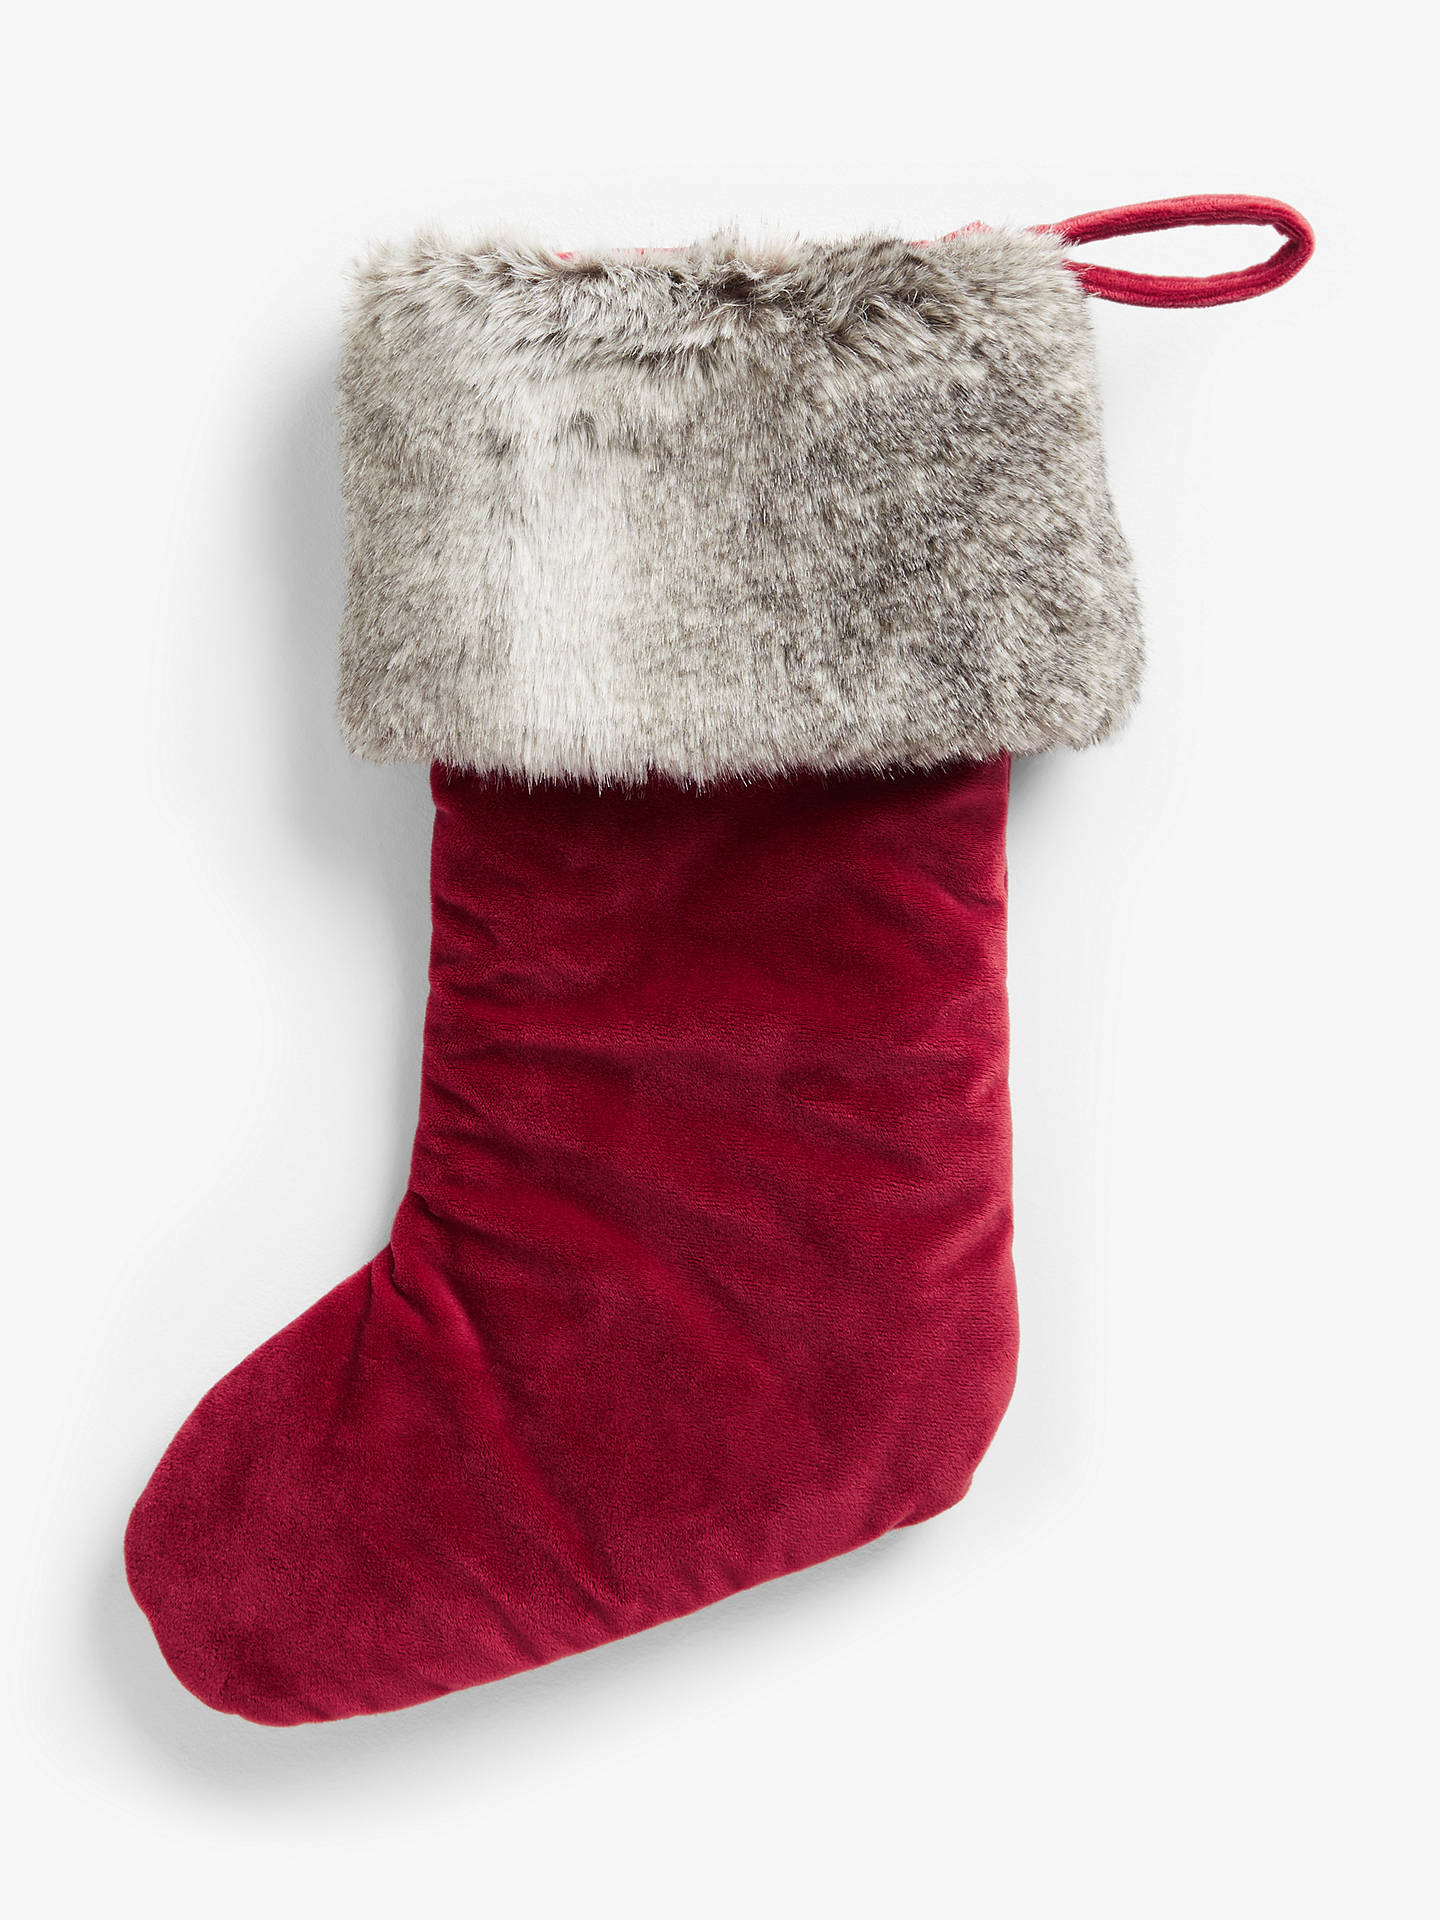 Bed Bath And Beyond Christmas Stockings.John Lewis Partners Traditions Faux Fur Trim Velvet Christmas Stocking Red Grey